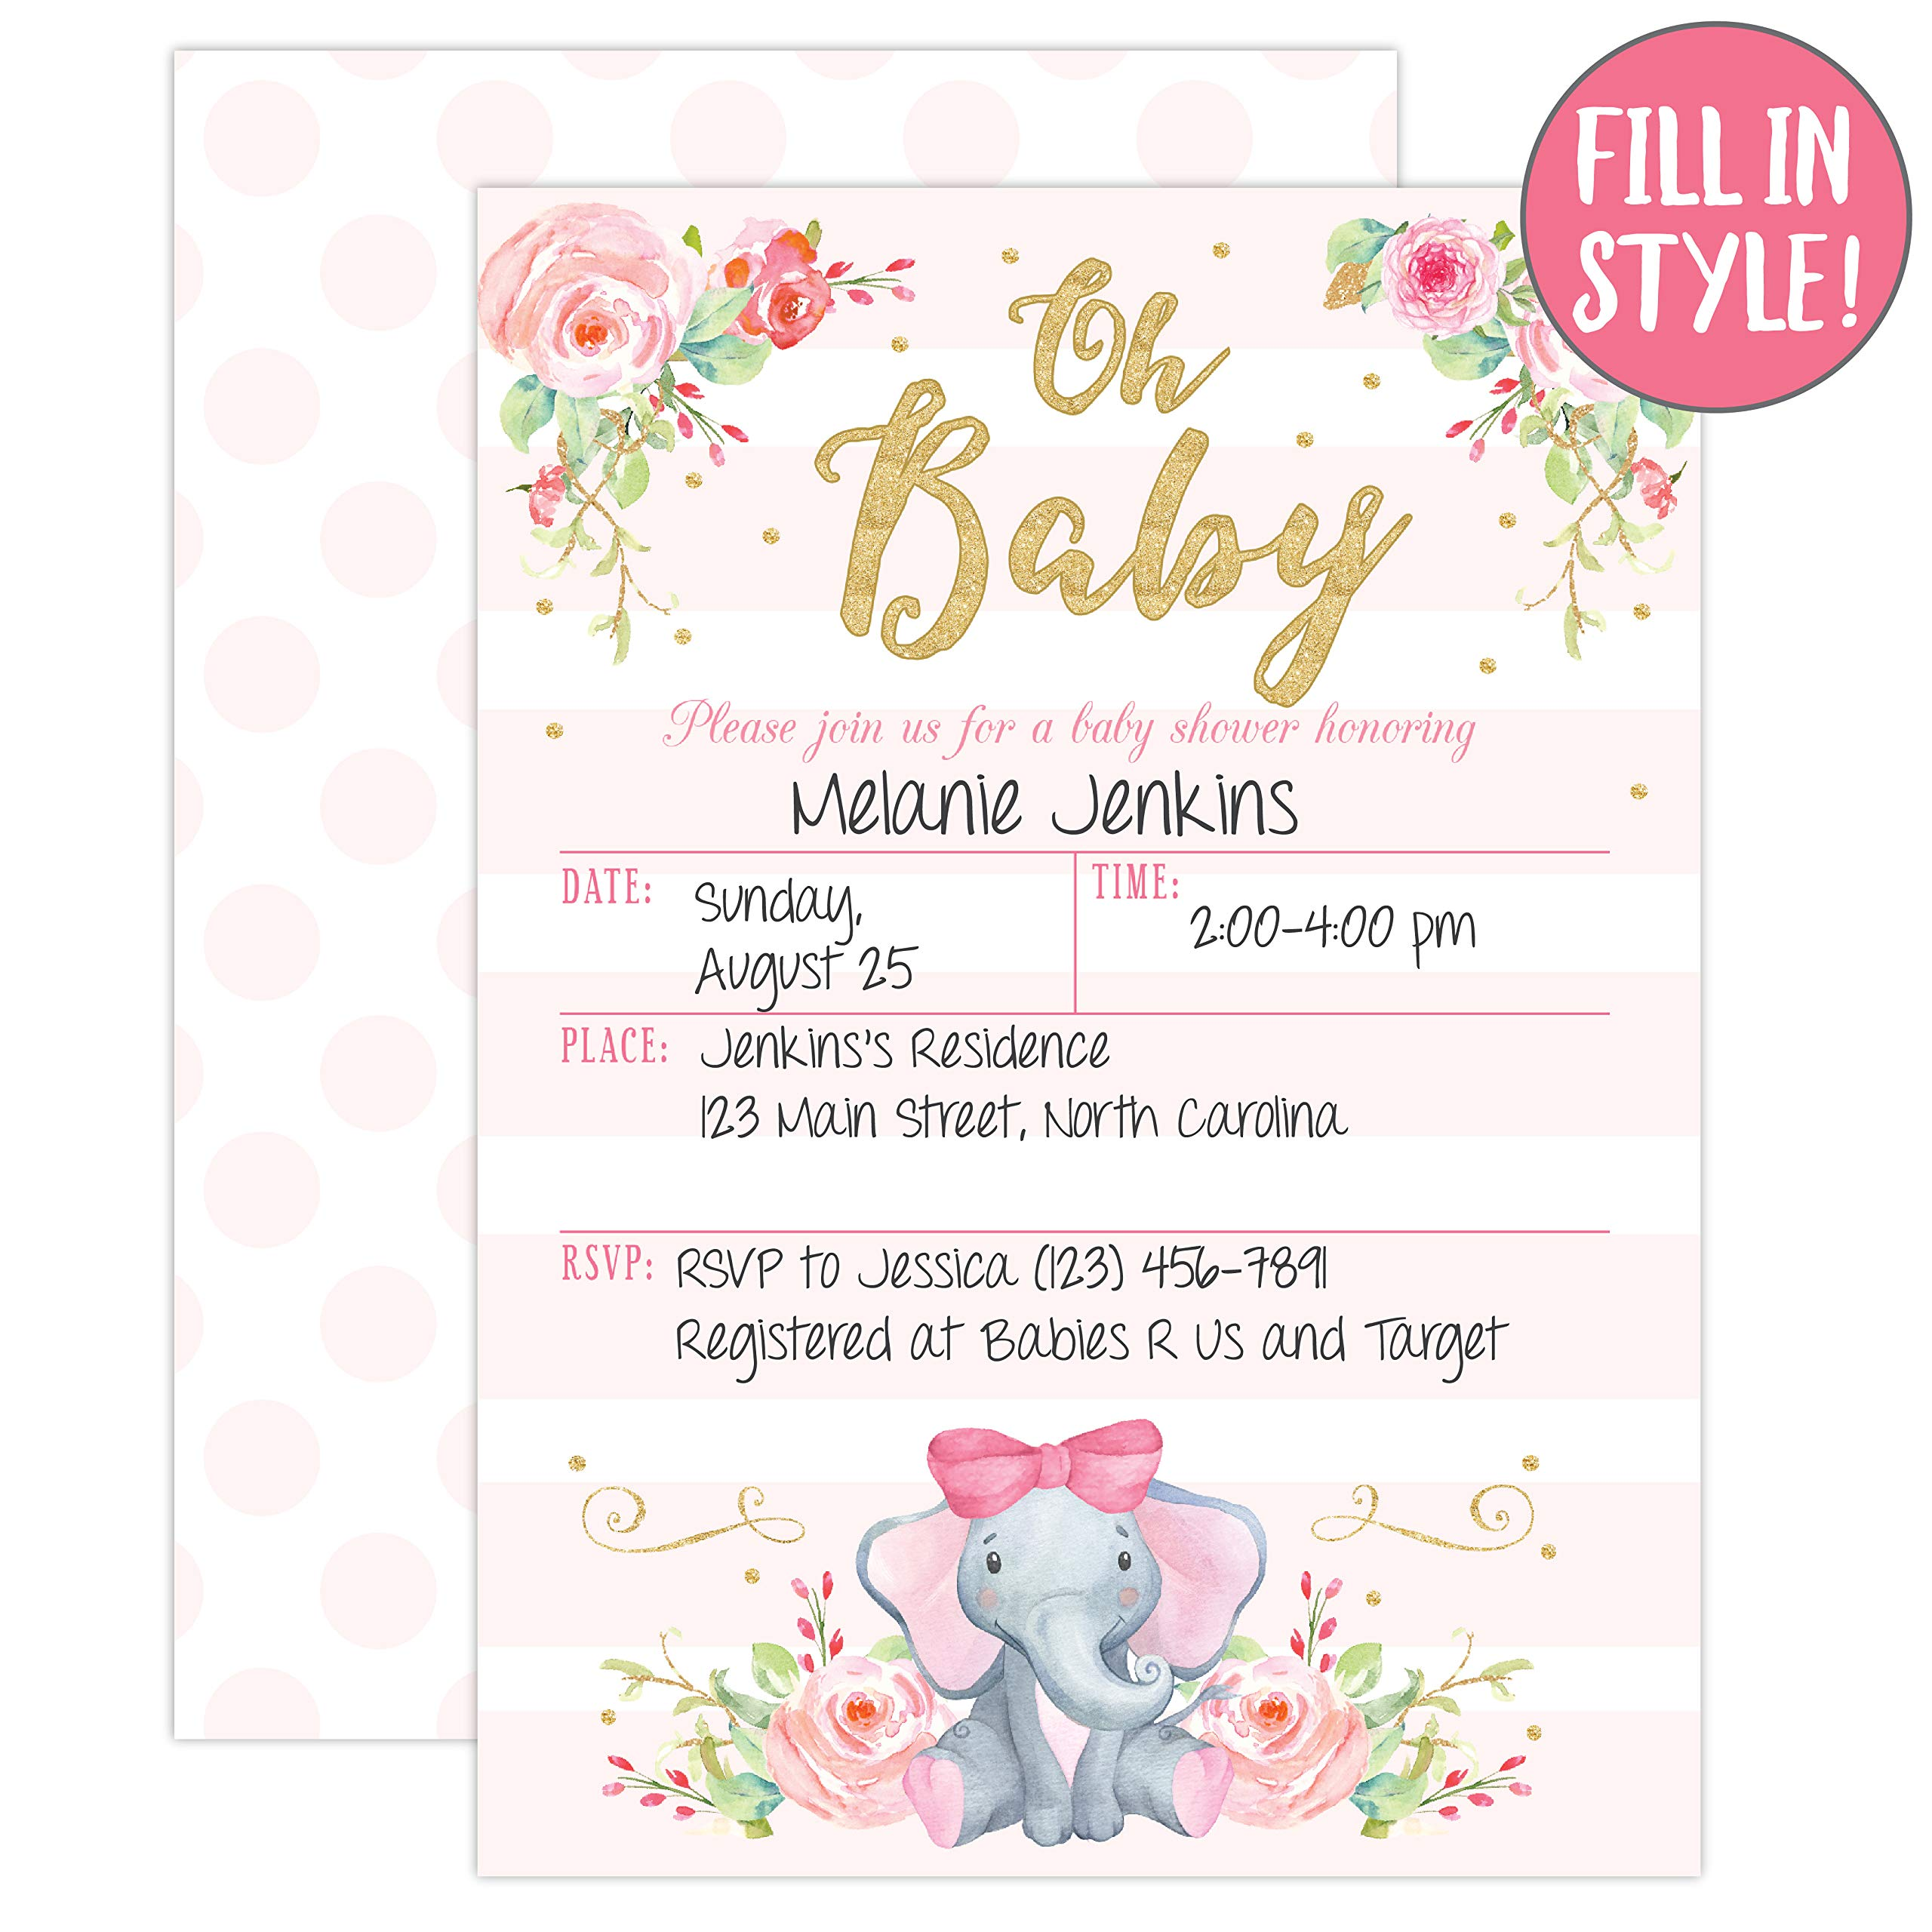 Coed Pink Rustic Gender Reveal Theme Greenery Garden Party Supplies 25 Girl Elephant Baby Shower Invitations Sprinkle Invite for Girl Cute Animal Peanut DIY Fill or Write in Blank Printable Card